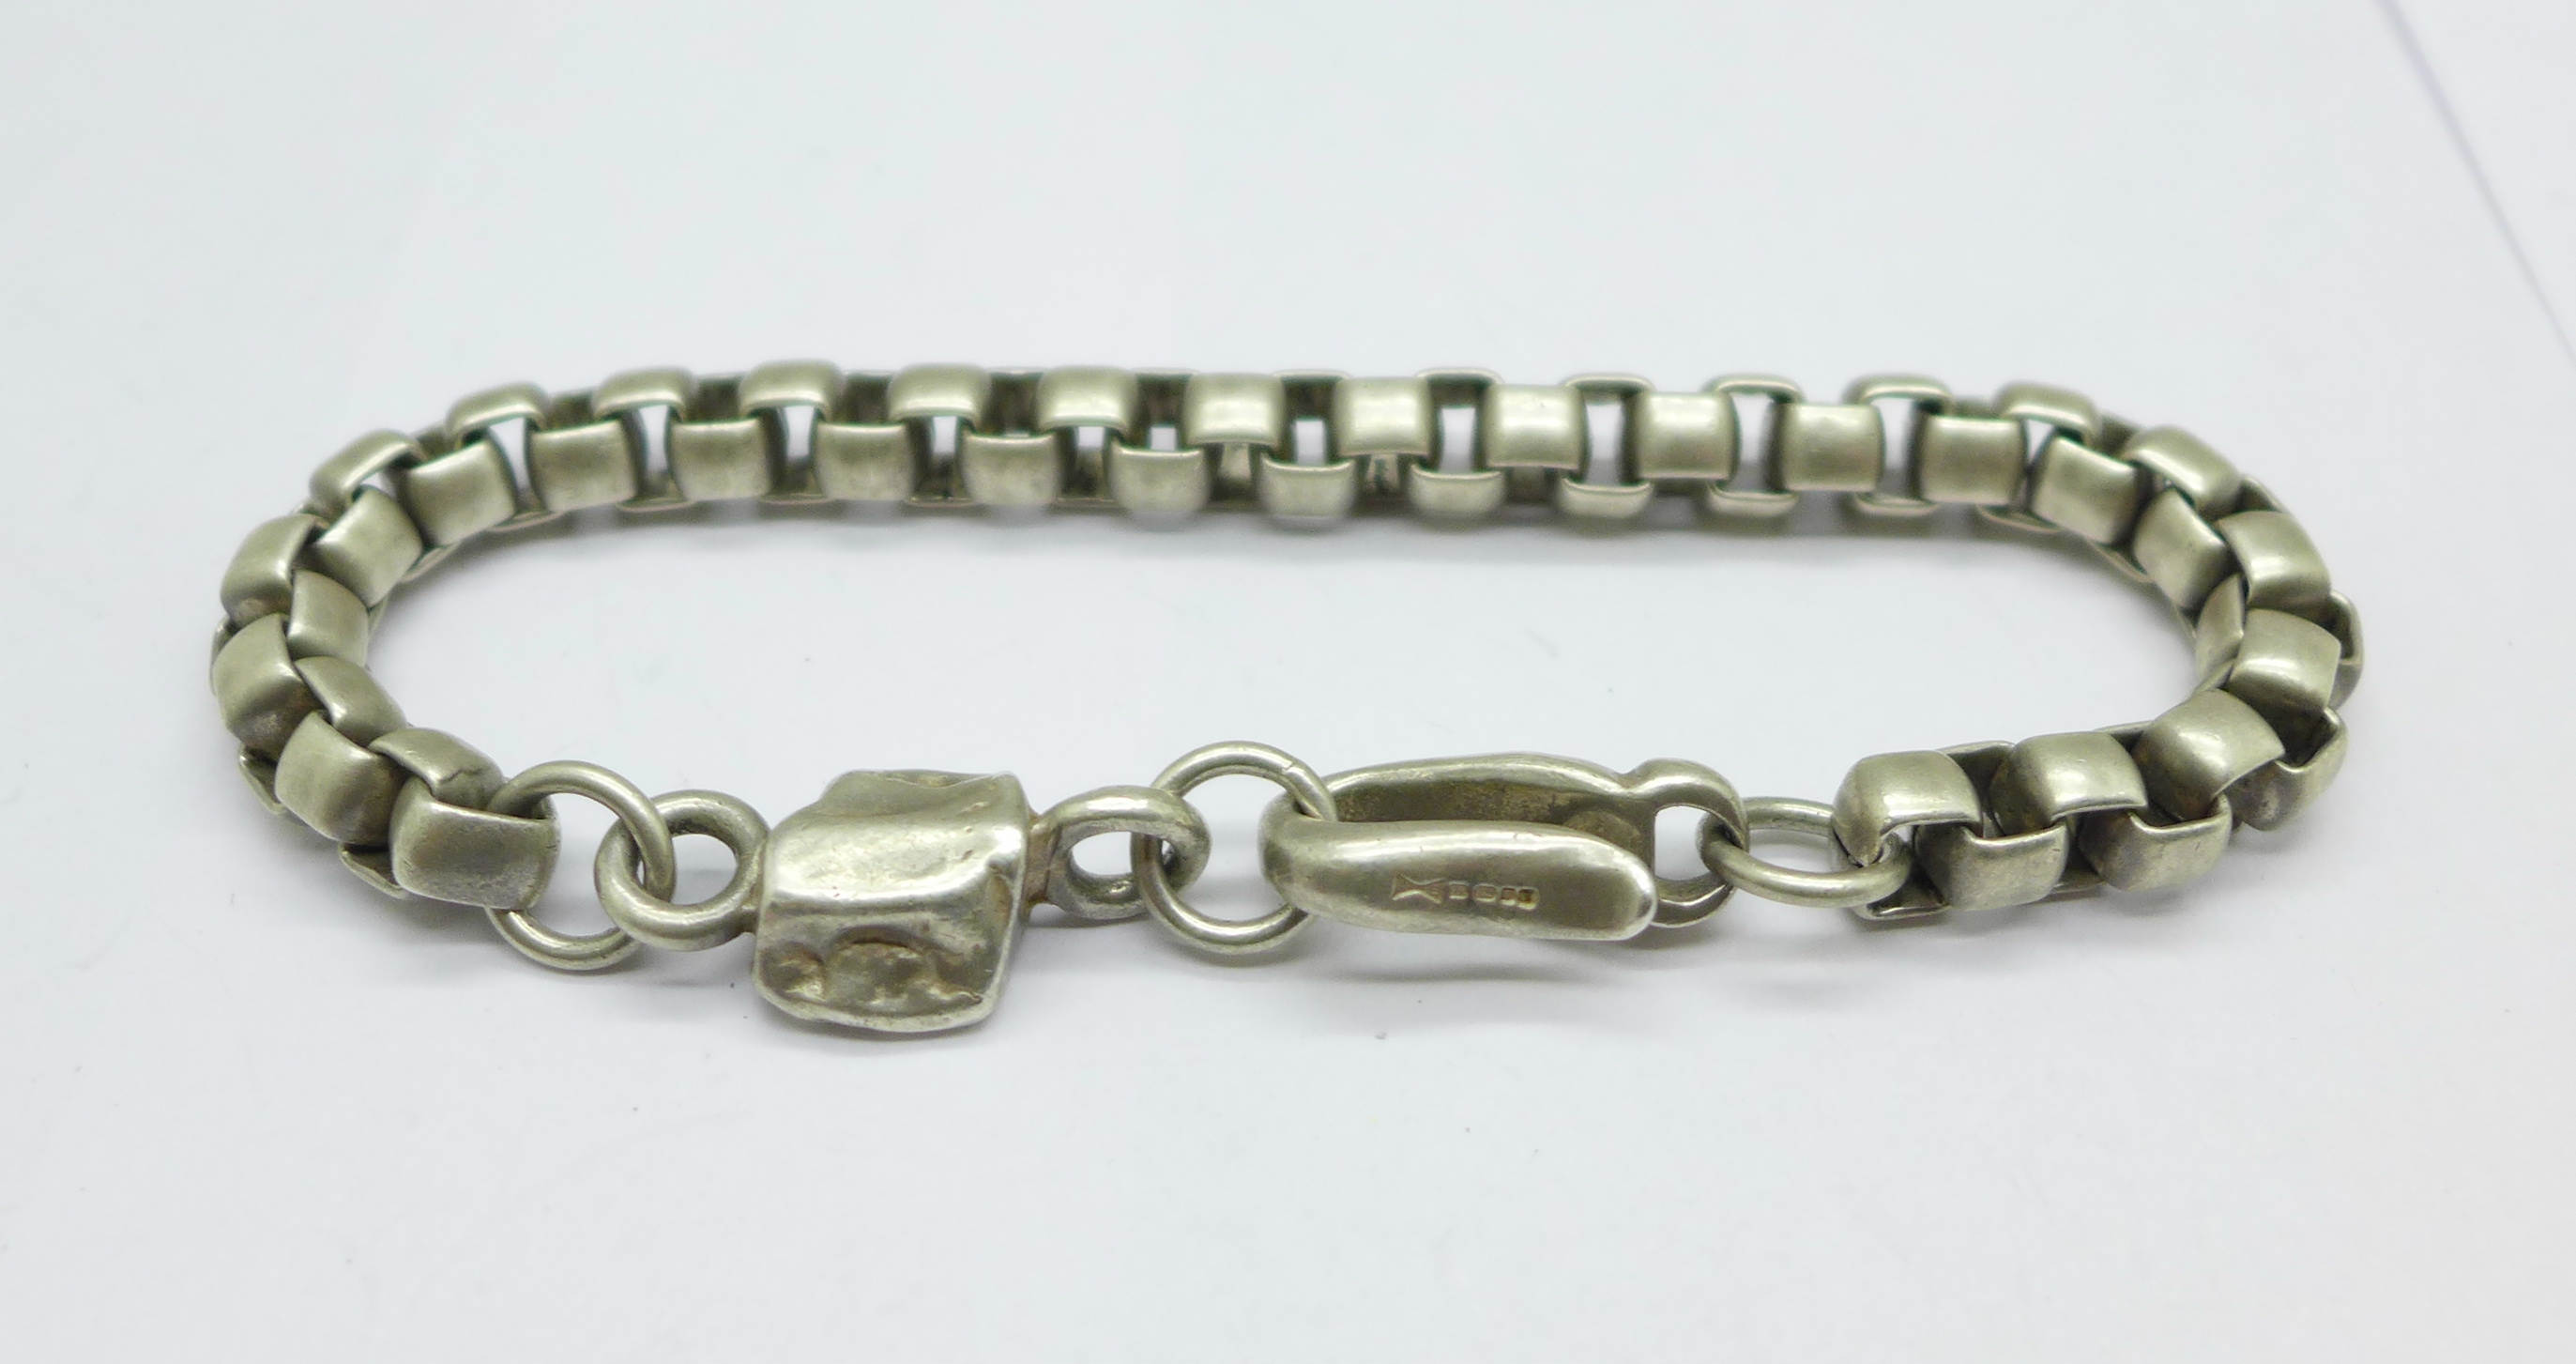 A Paul Smith silver chain with 'nugget' detail, 46g - Image 2 of 3